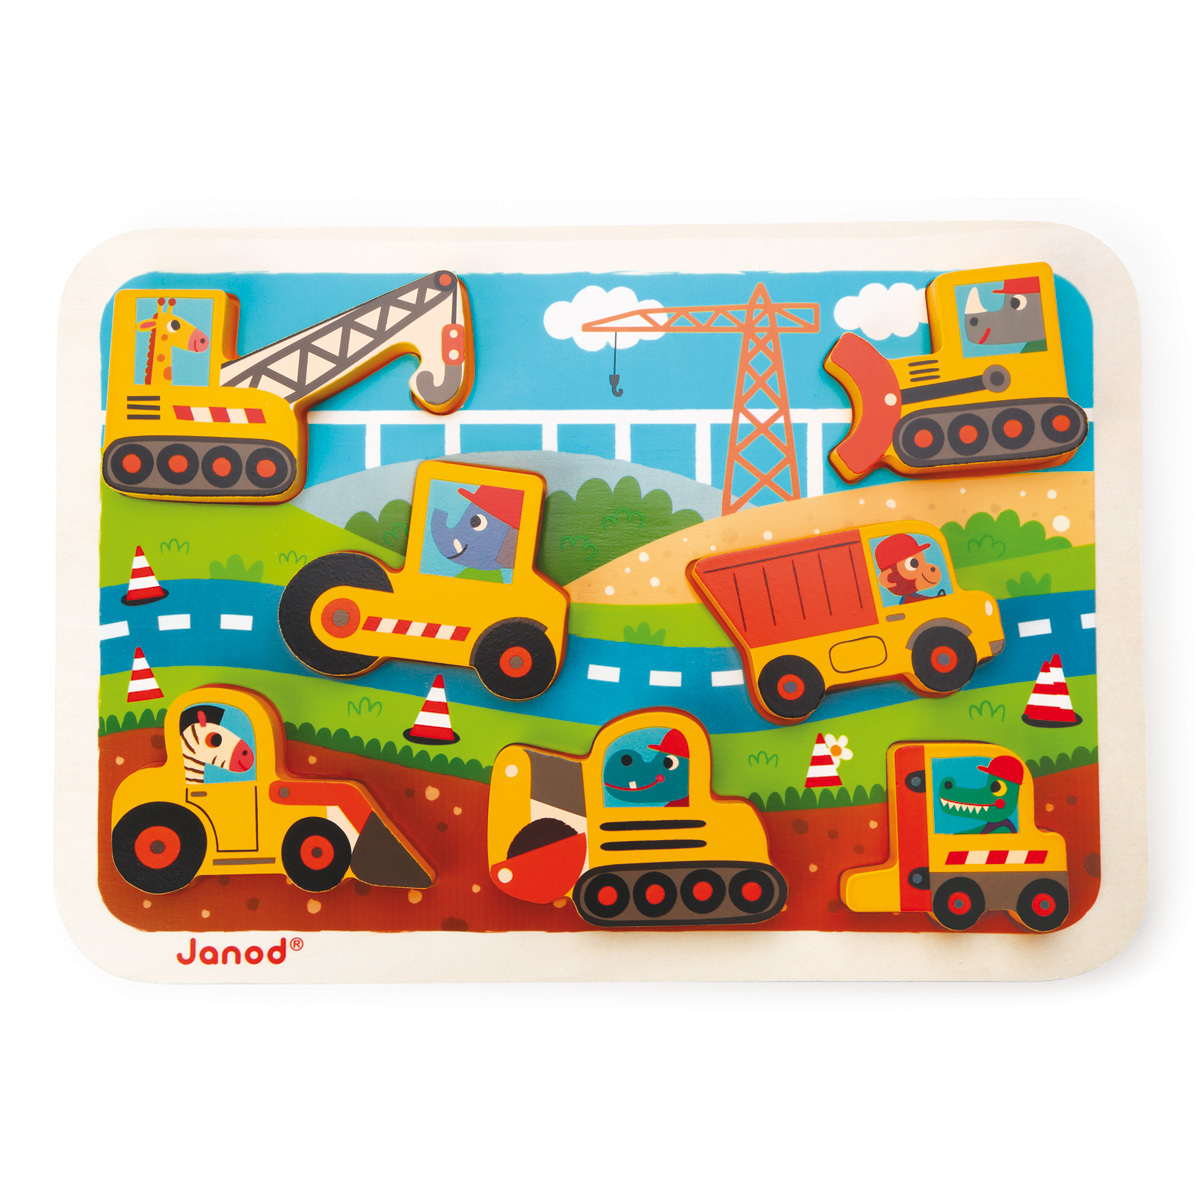 Mes premiers jouets Chunky Puzzle Véhicules Chantier Chunky Puzzle Véhicules Chantier